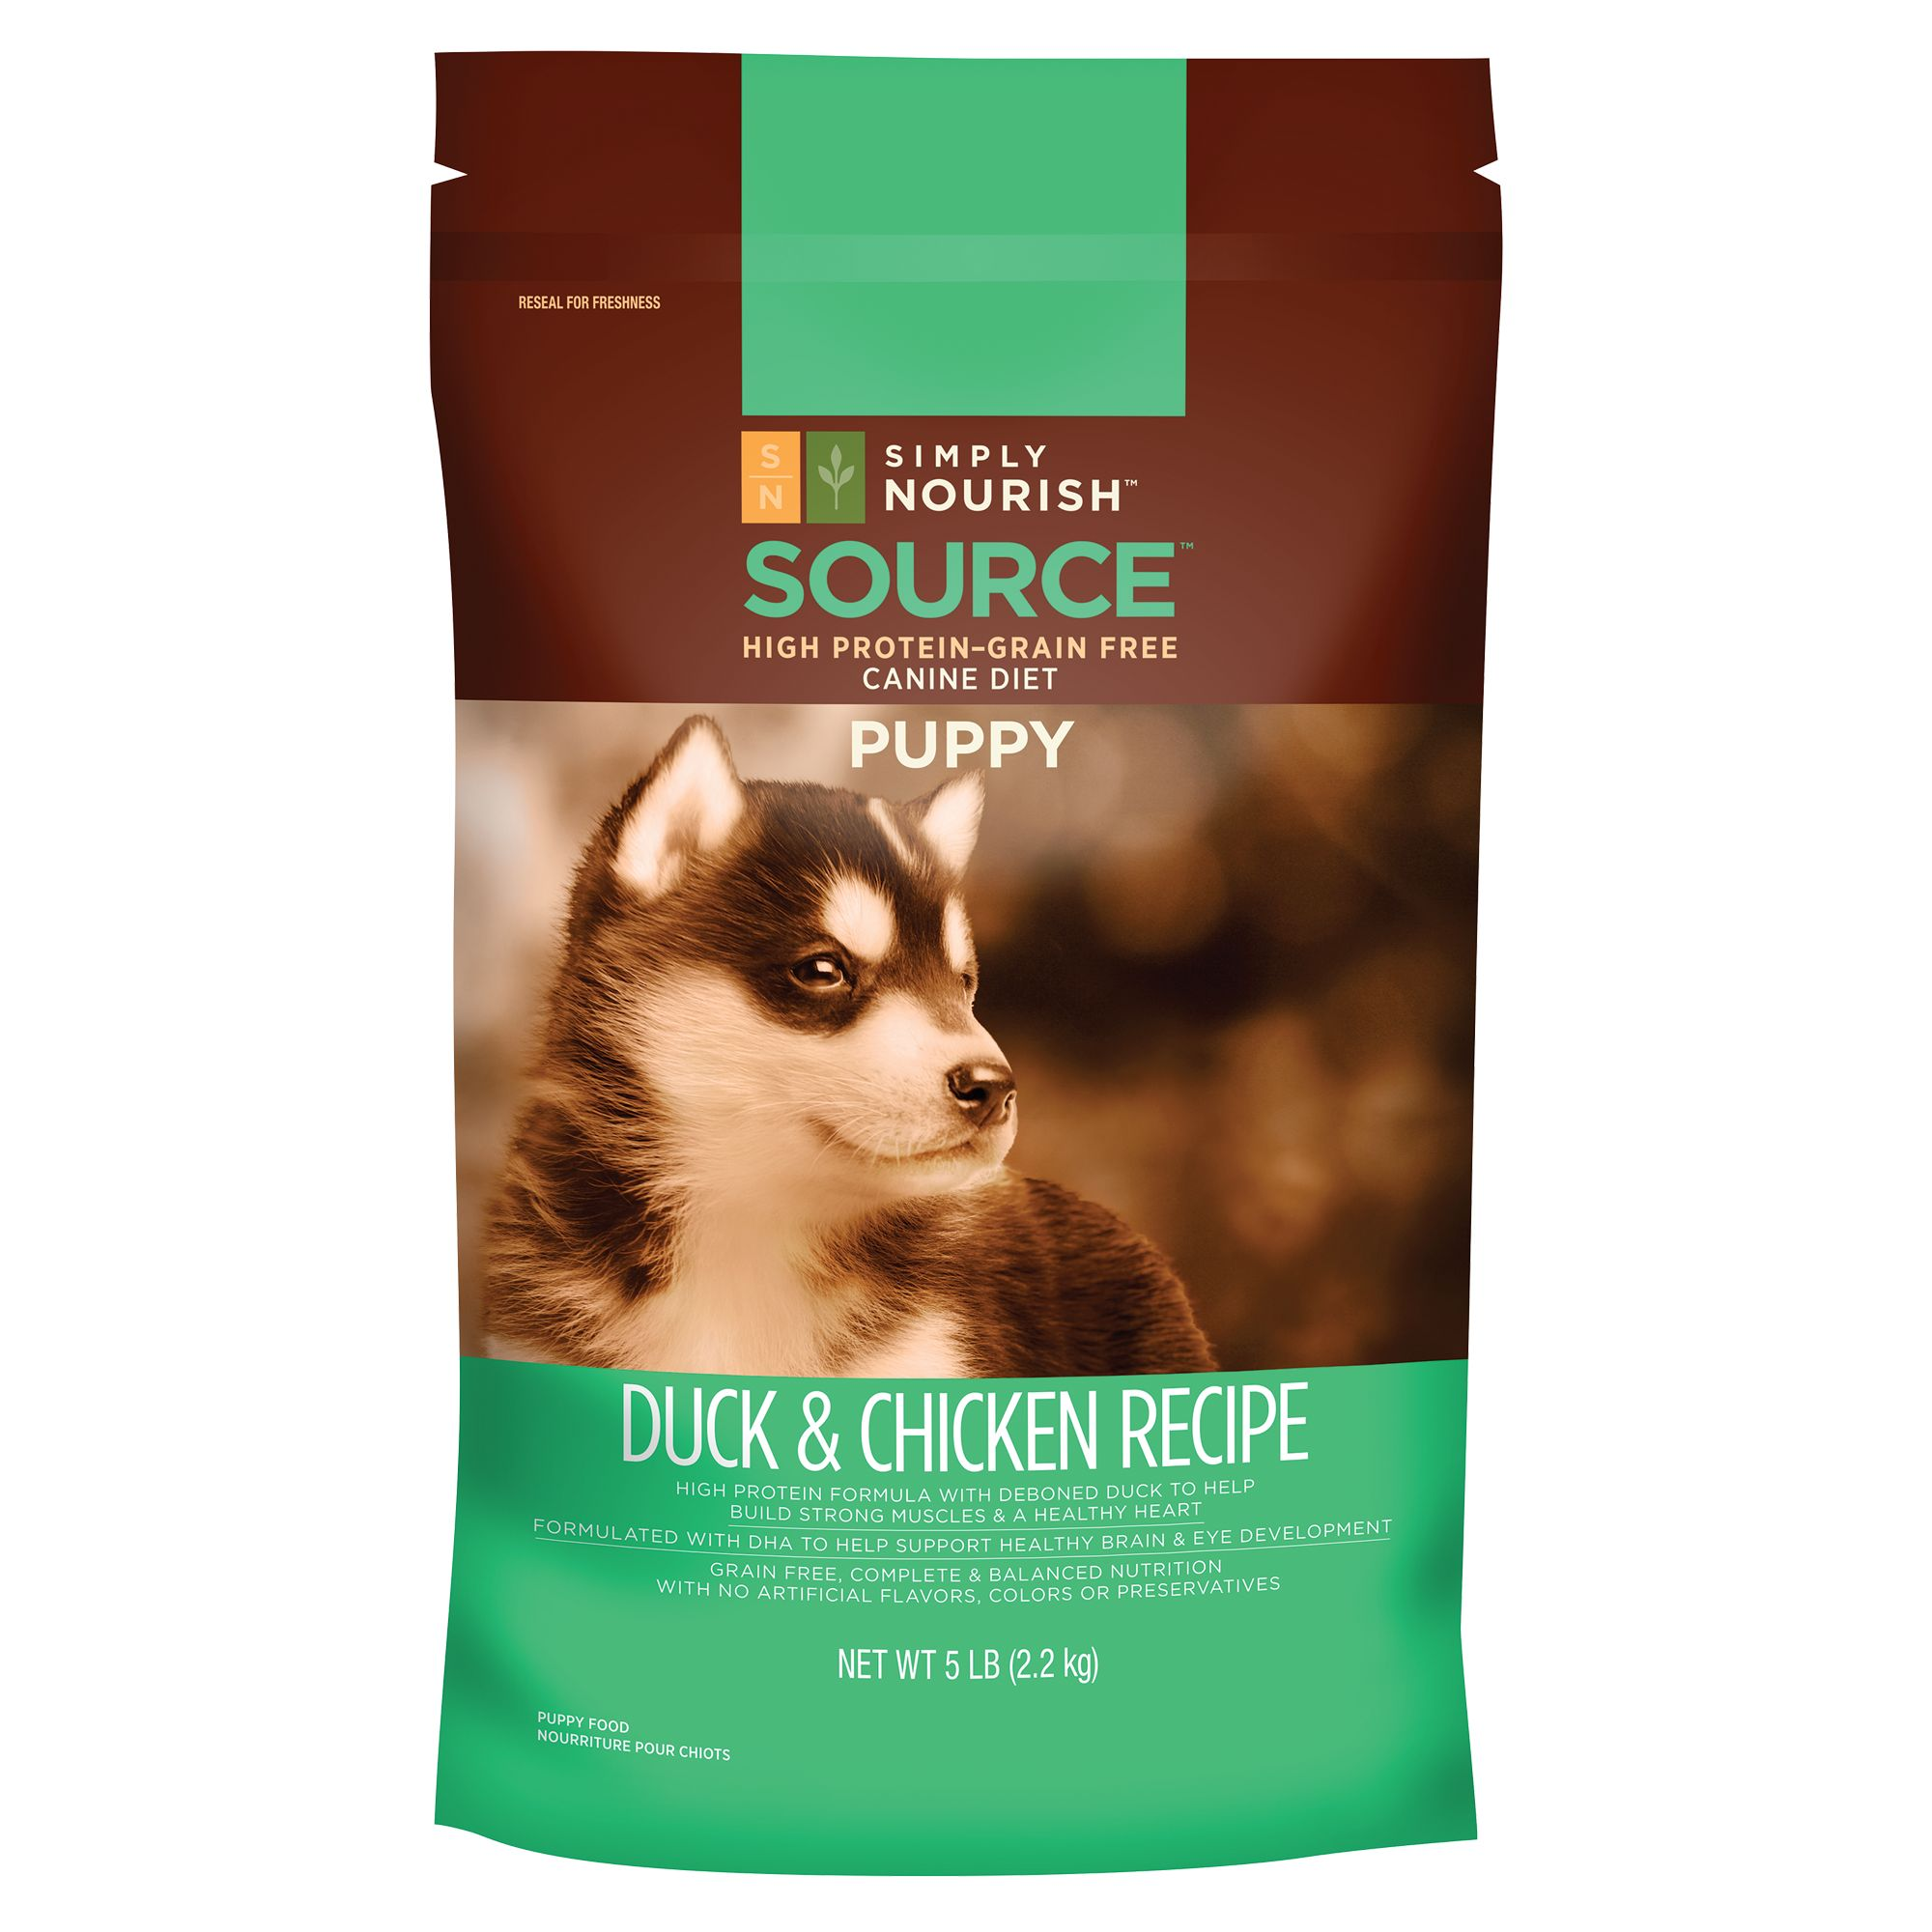 Simply Nourish Source Puppy Food - Grain Free, High Protein, Duck and Chicken size: 5 Lb 5211575